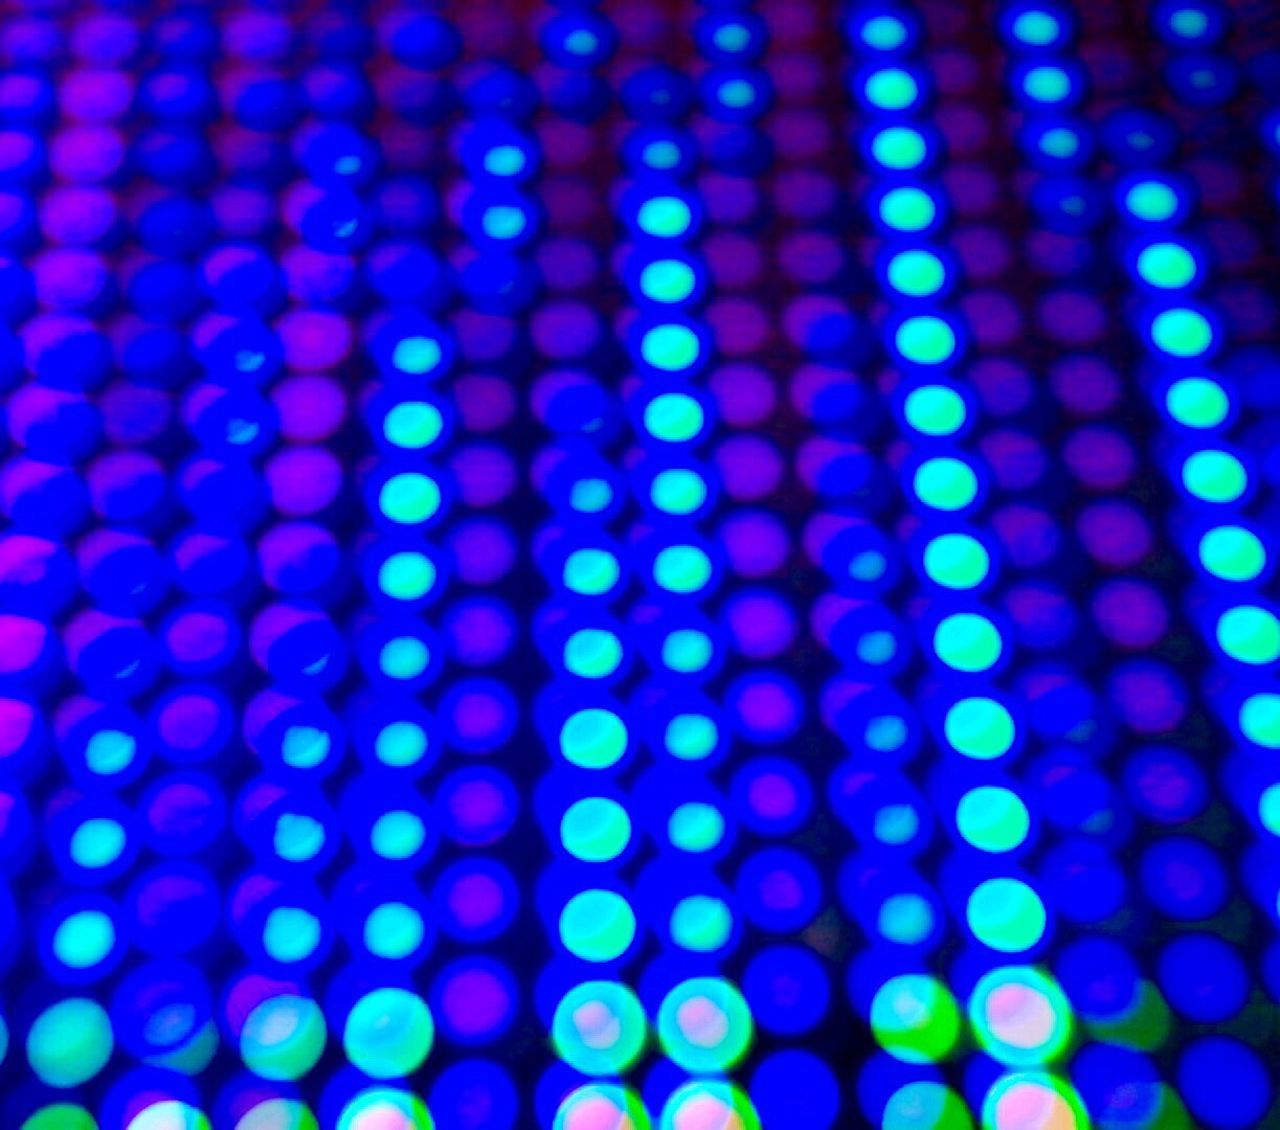 illuminated, pattern, lighting equipment, blue, defocused, abstract, backgrounds, no people, technology, large group of objects, multi colored, industry, futuristic, night, disco lights, neon, close-up